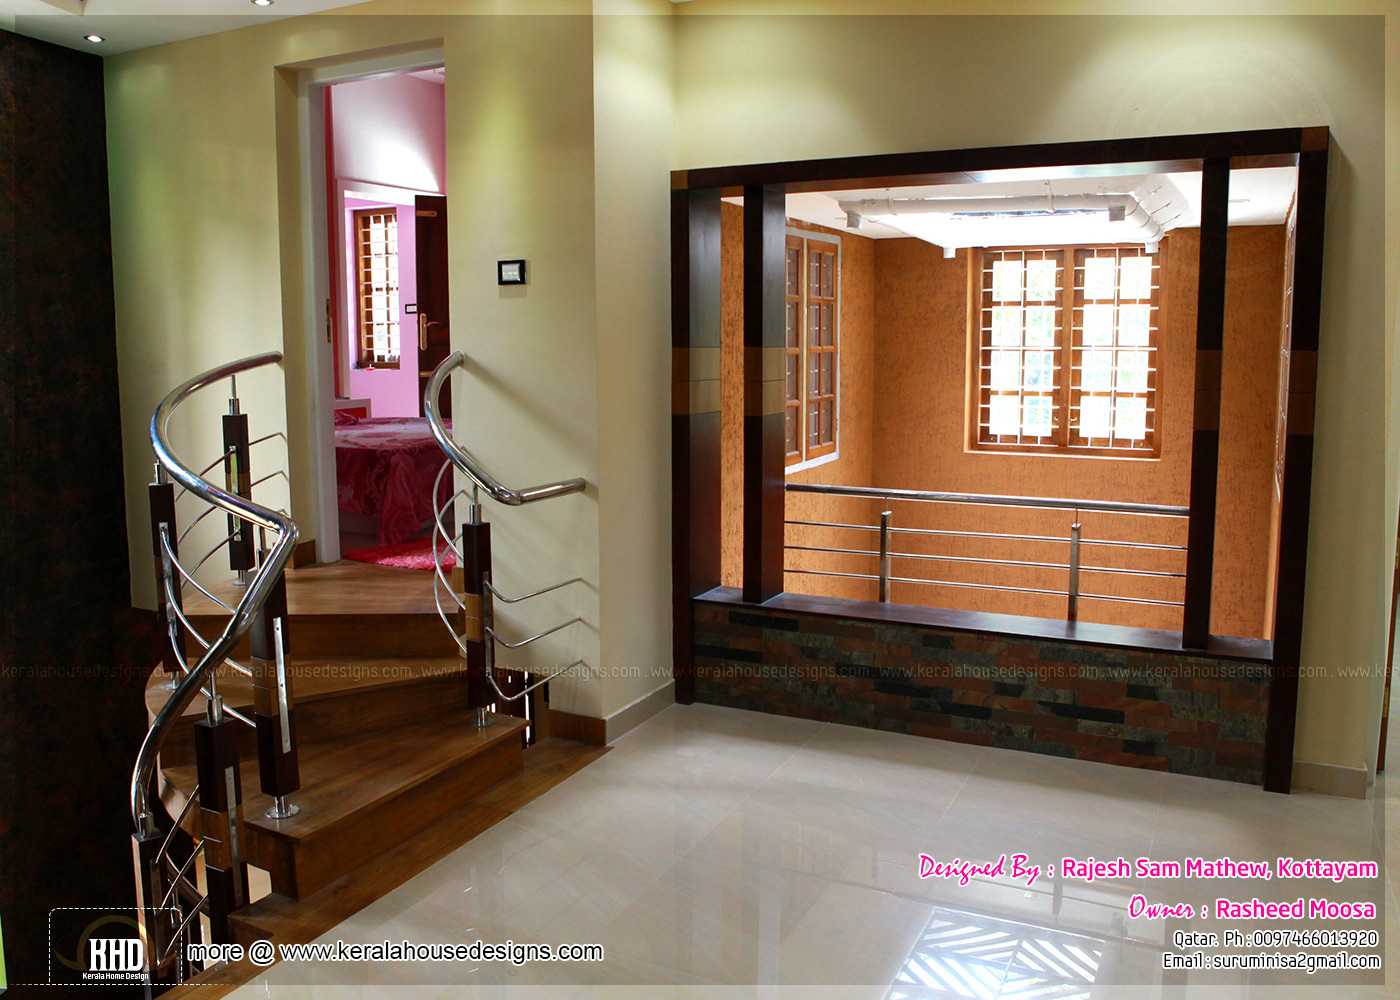 Kerala interior design with photos title=